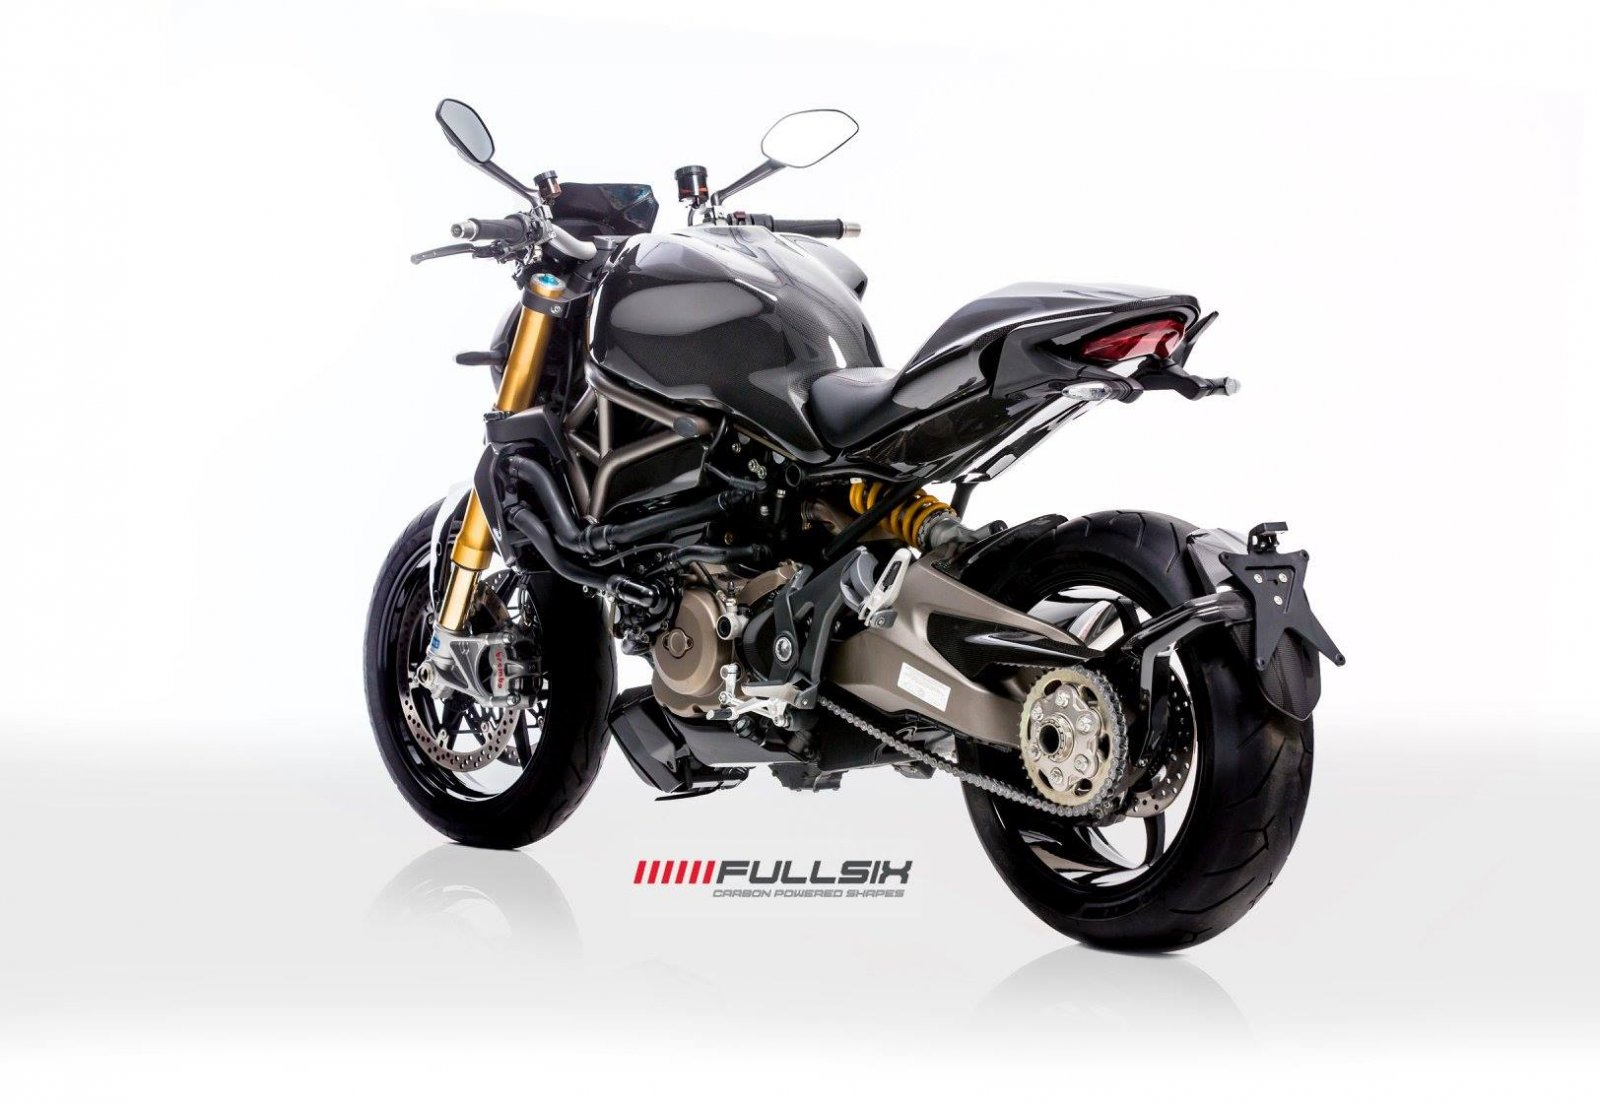 Fullsix Ducati Monster 821 1200 Carbon Fibre Parts Now Available